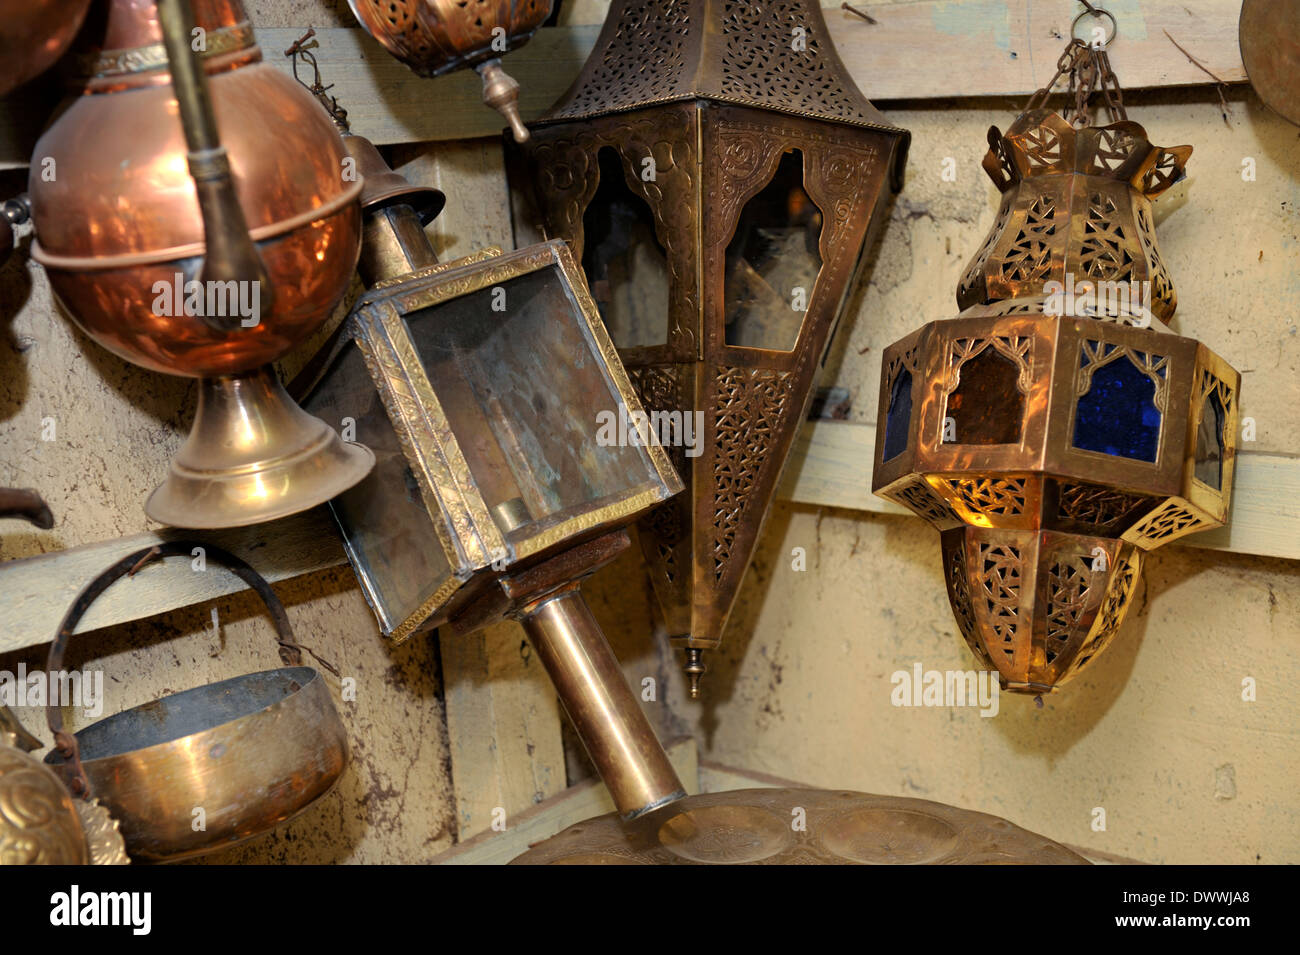 Metal work, teapots, lamps, pots in souk Marrakech, Morocco, North Africa - Stock Image